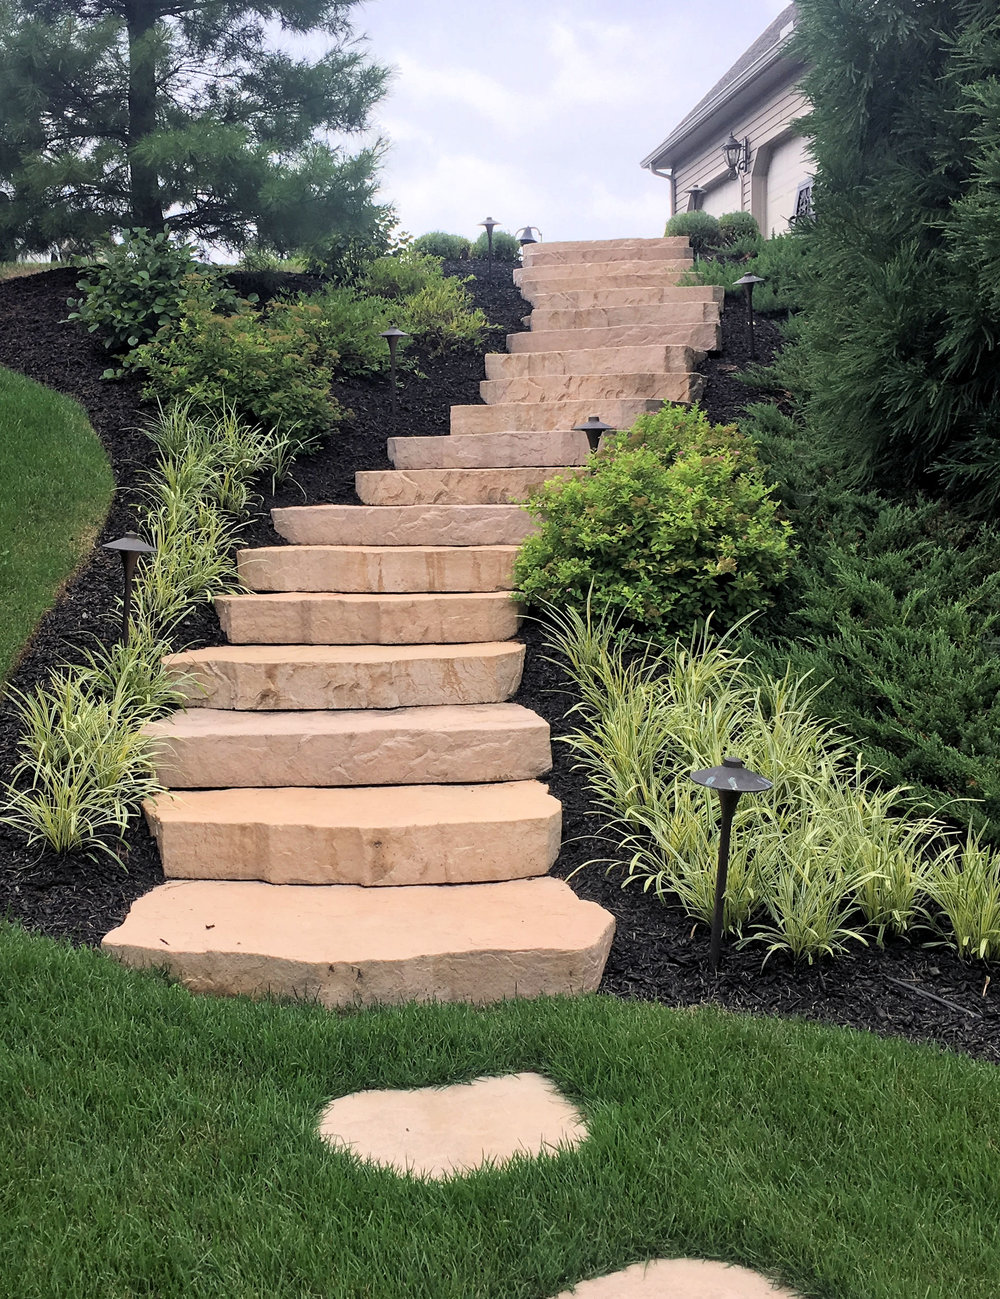 Premier landscape design in Hampden, PA